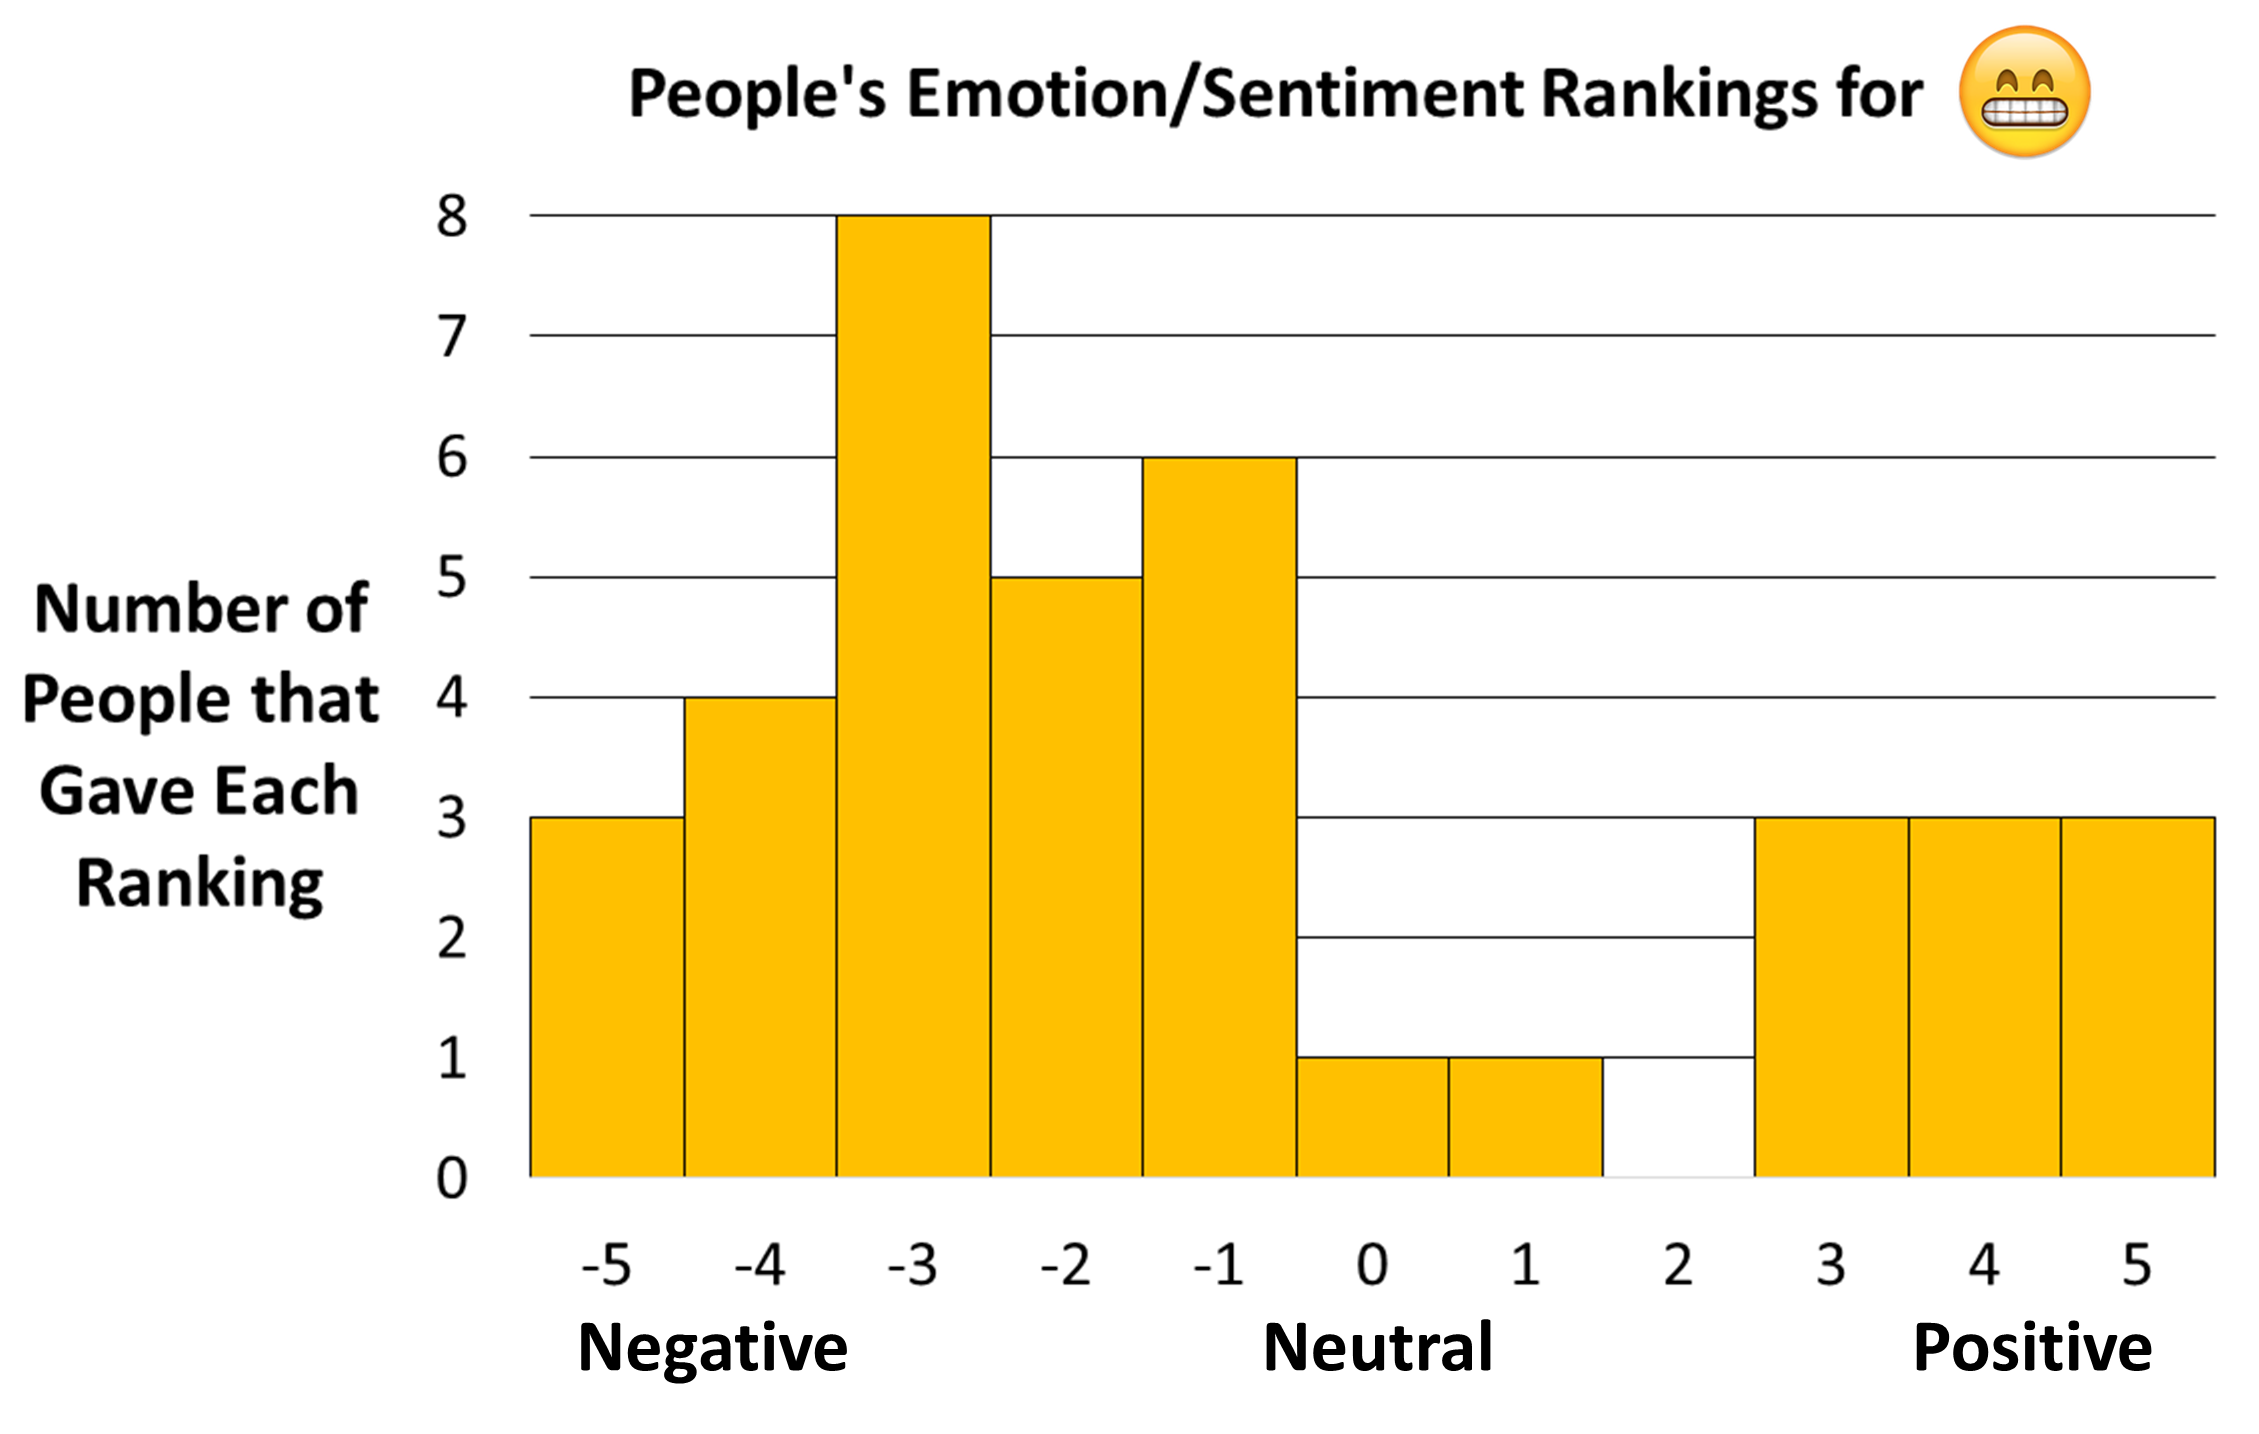 Figure showing distribution of sentiment ratings for Apple's grinning face with smiling eyes emoji